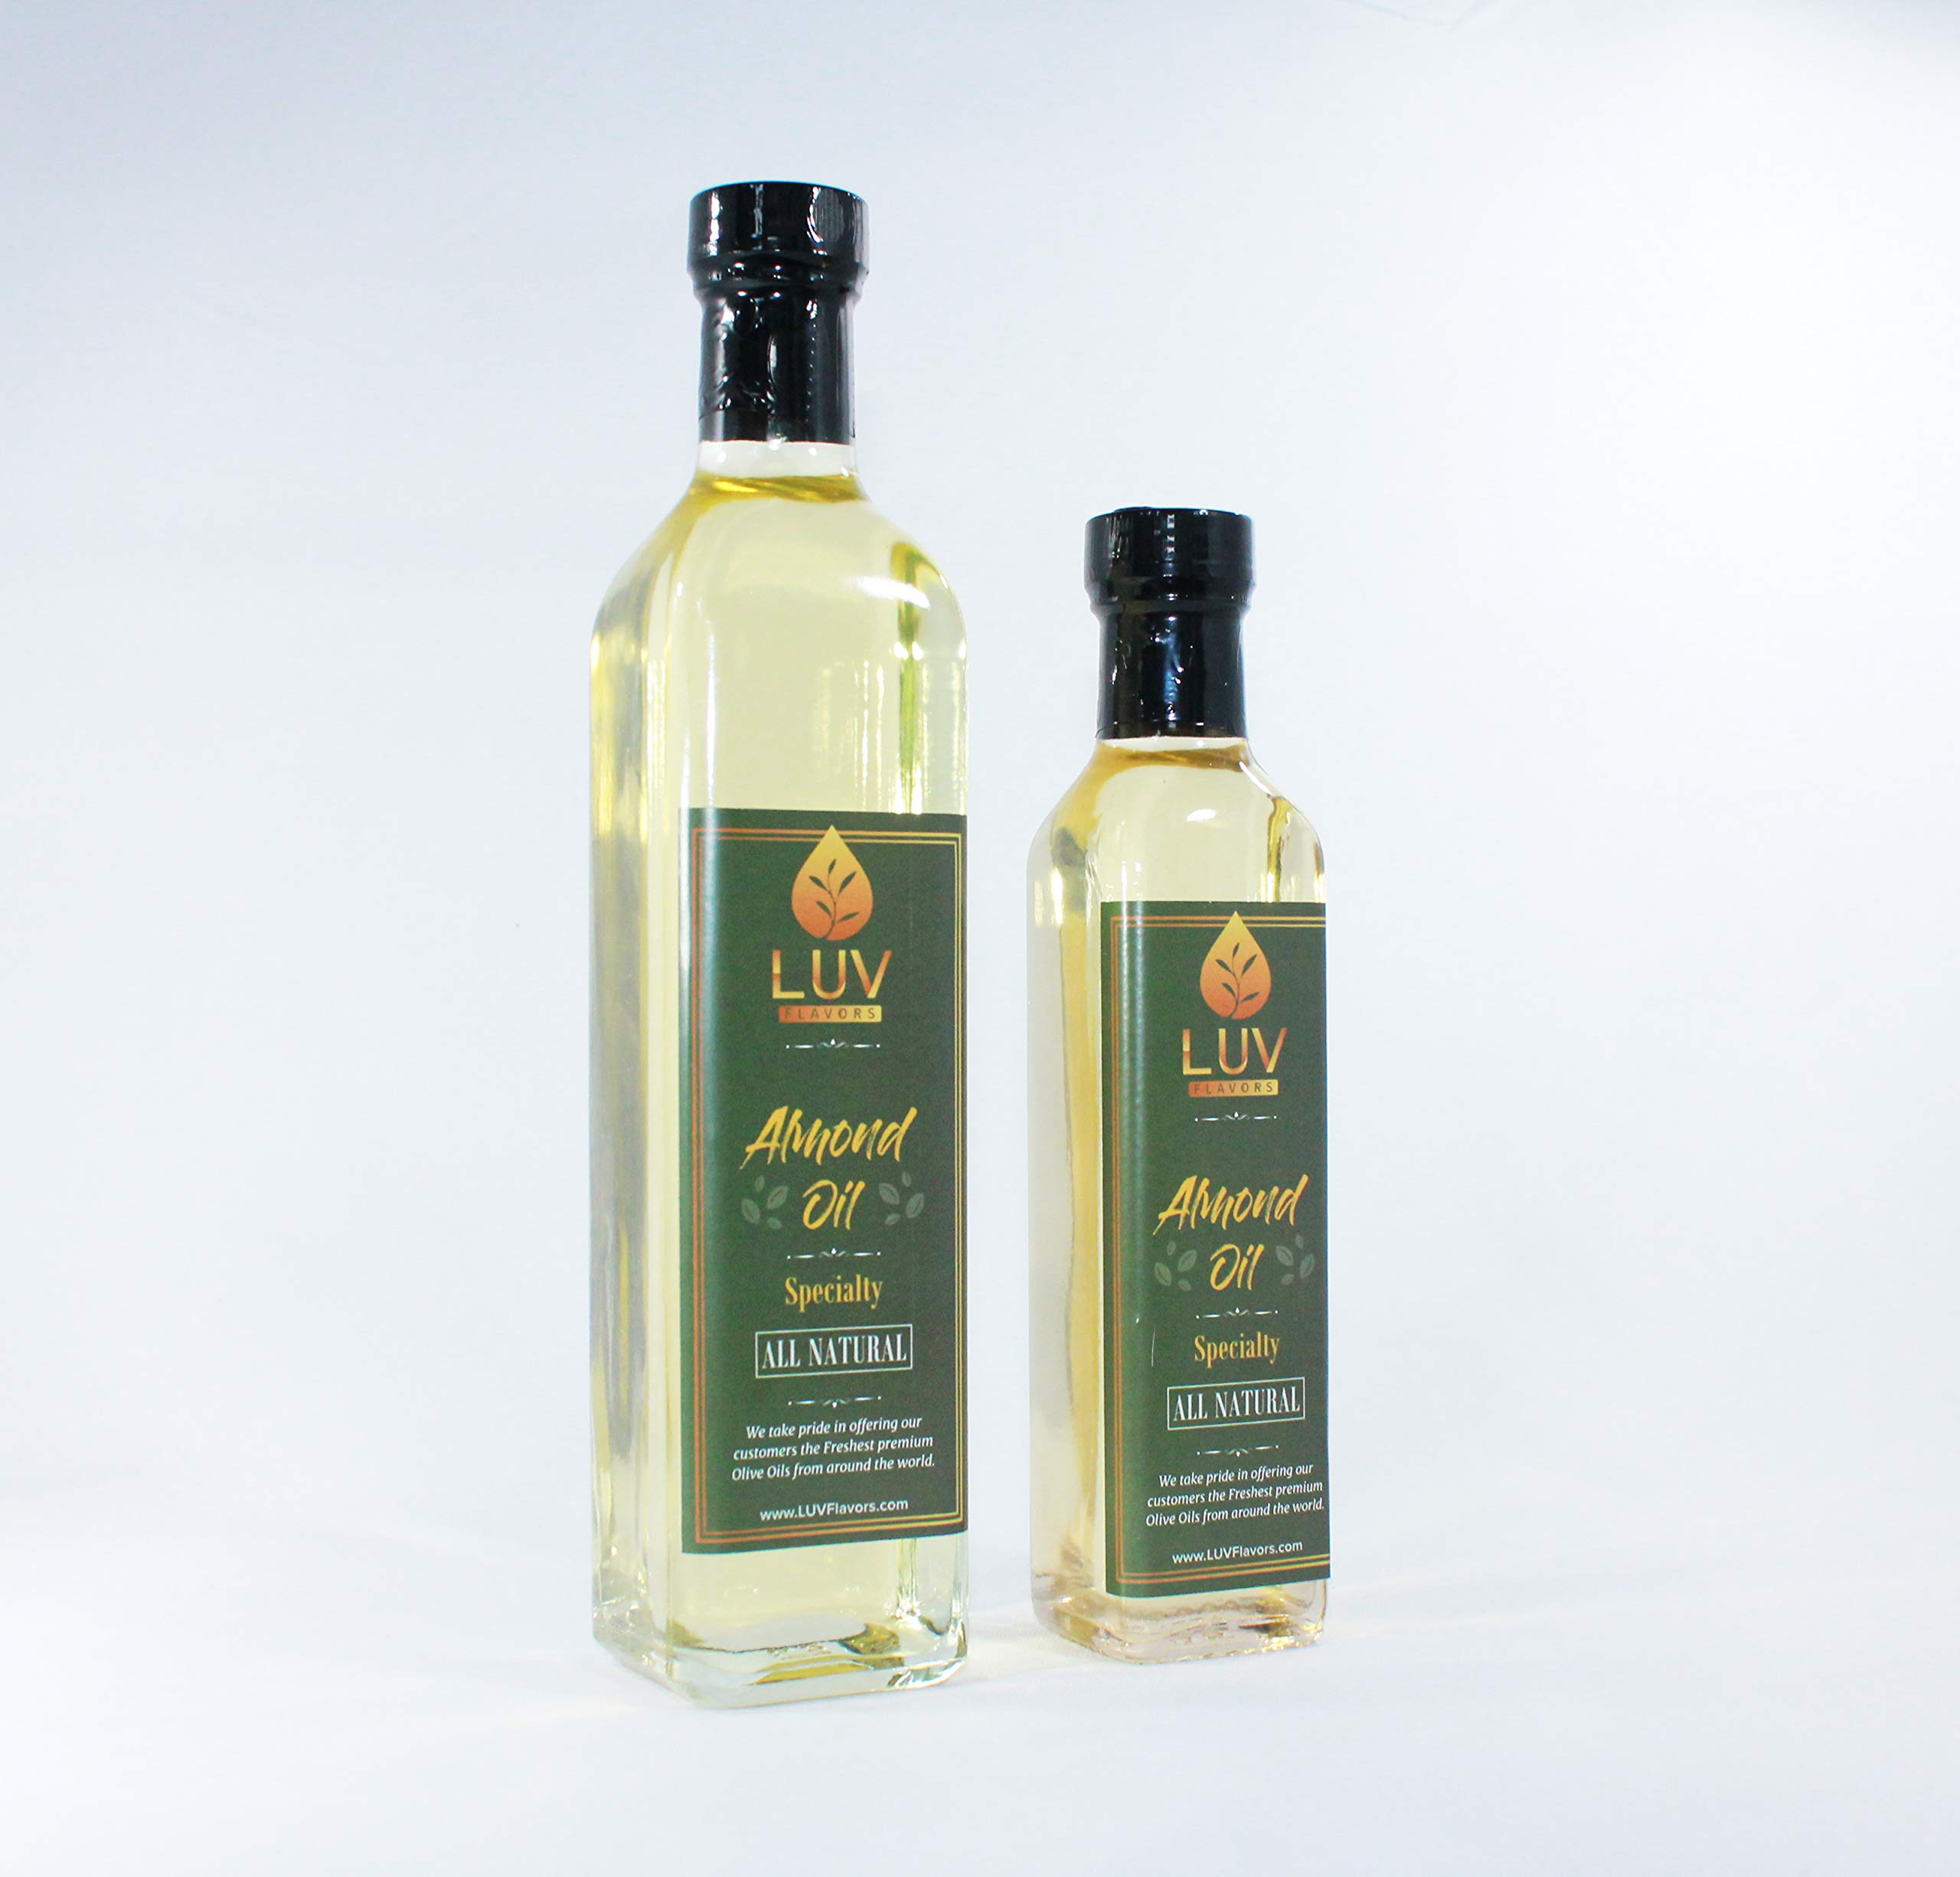 Almond Oil Expeller Pressed (250 ml) by LUV Flavors